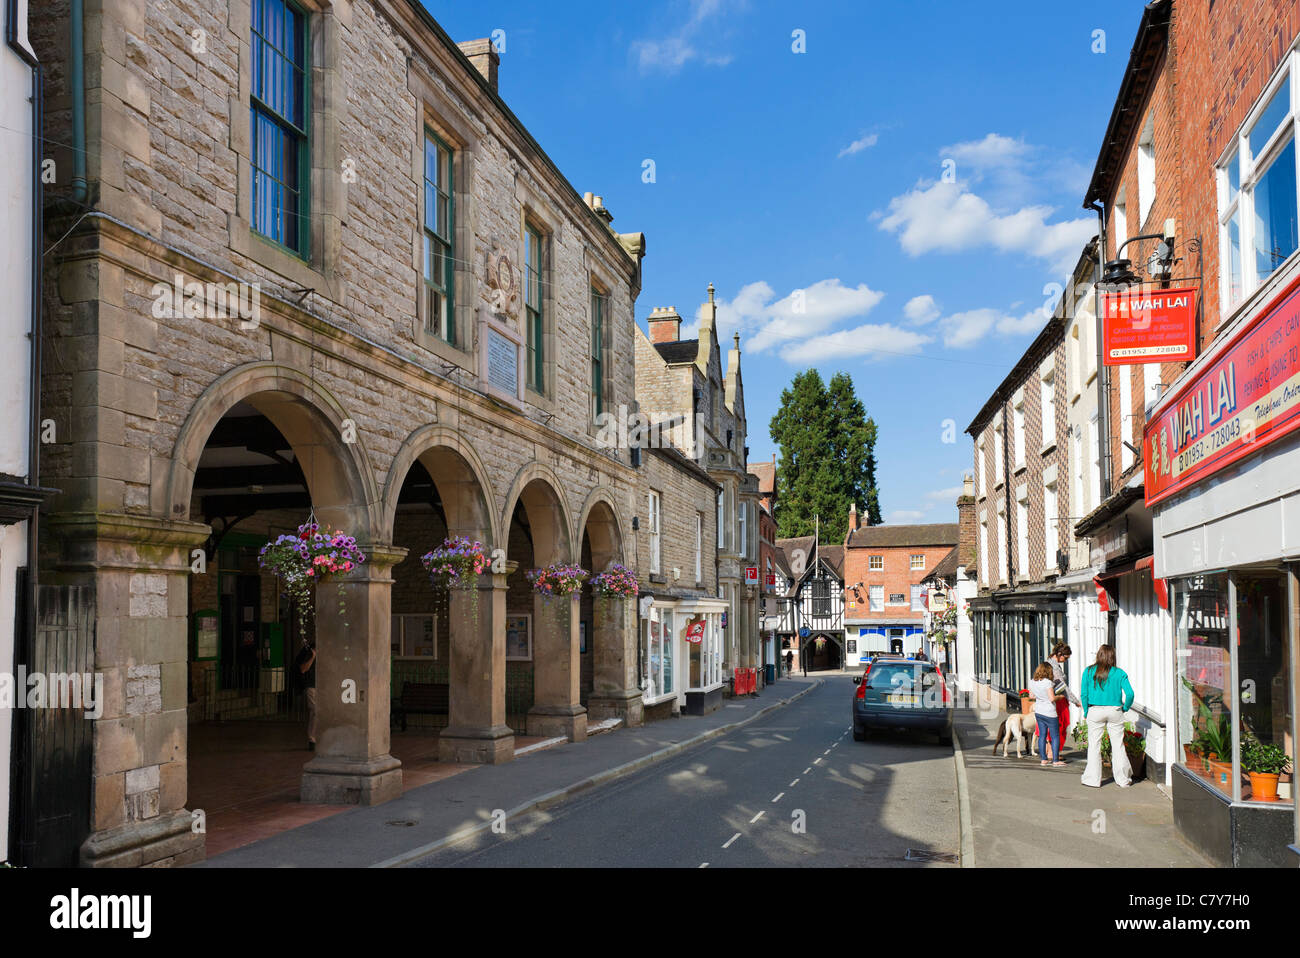 Shops on the High Street with the Corn Exchange to the left, Much Wenlock, Shropshire, England, UK - Stock Image